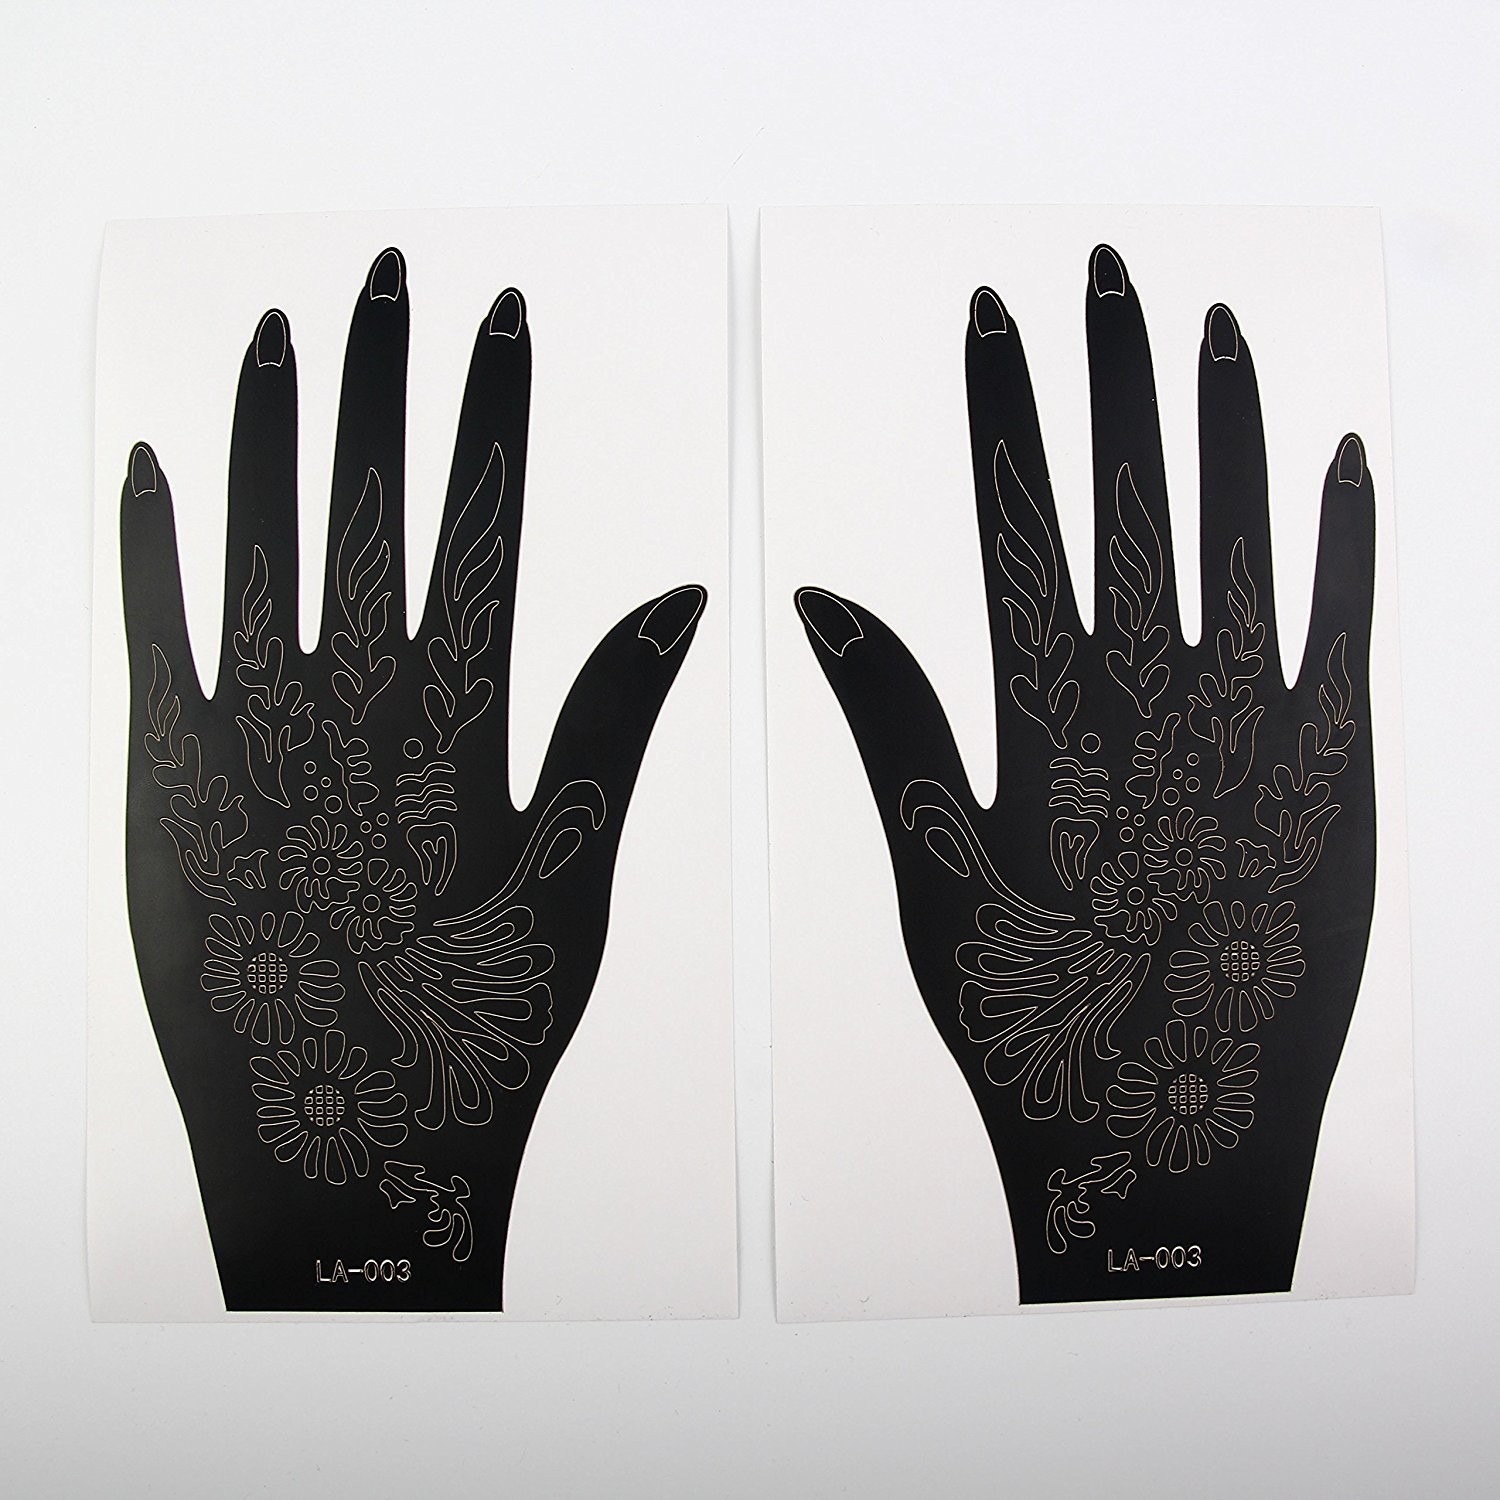 Tattoo Stencils. New amazing neat risk free self-applicable and effortless tattoos for hands and body. Use it with henna or color spray. Returnable upon dissatisfaction! PROMOTIONAL PRICE! (LA-003)